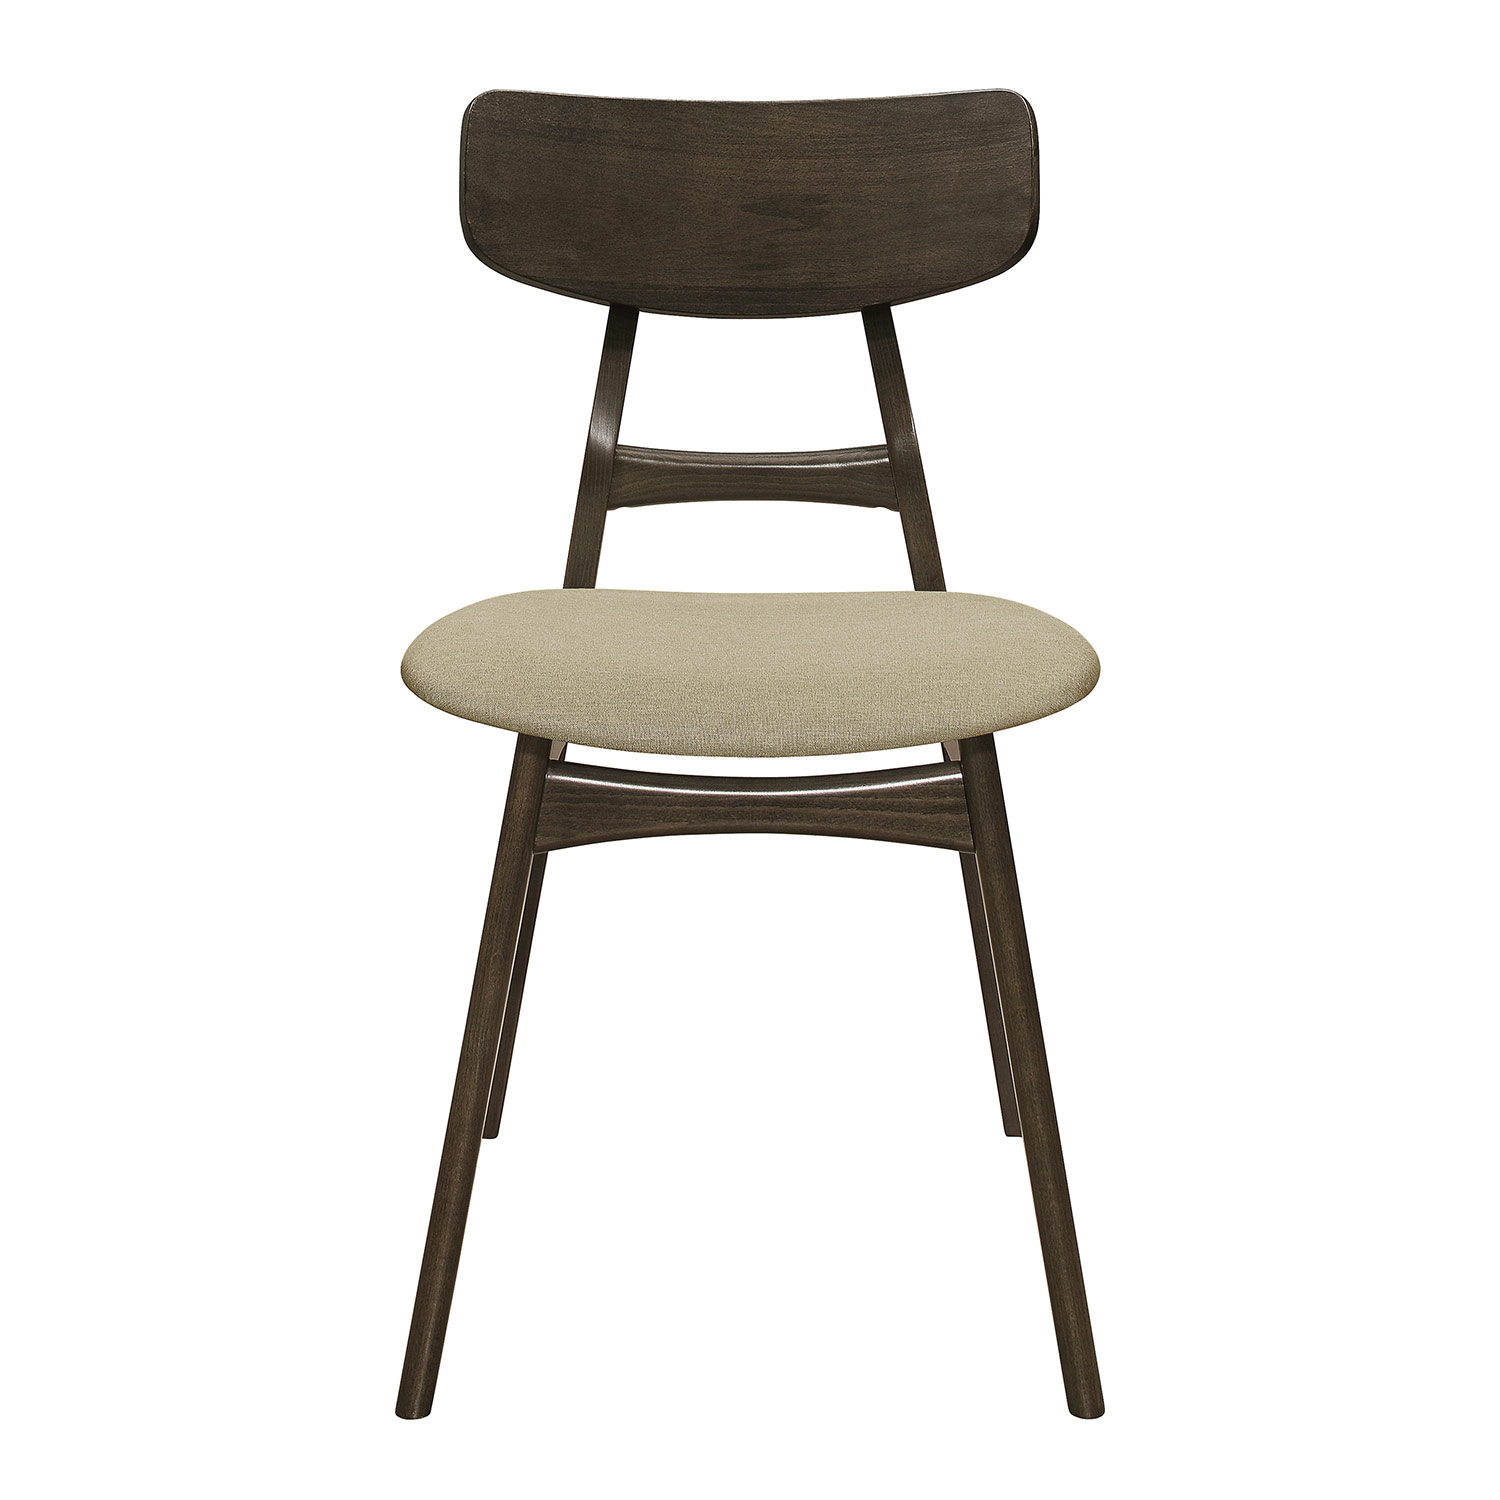 Homelegance Tannar Side Chair - Beige